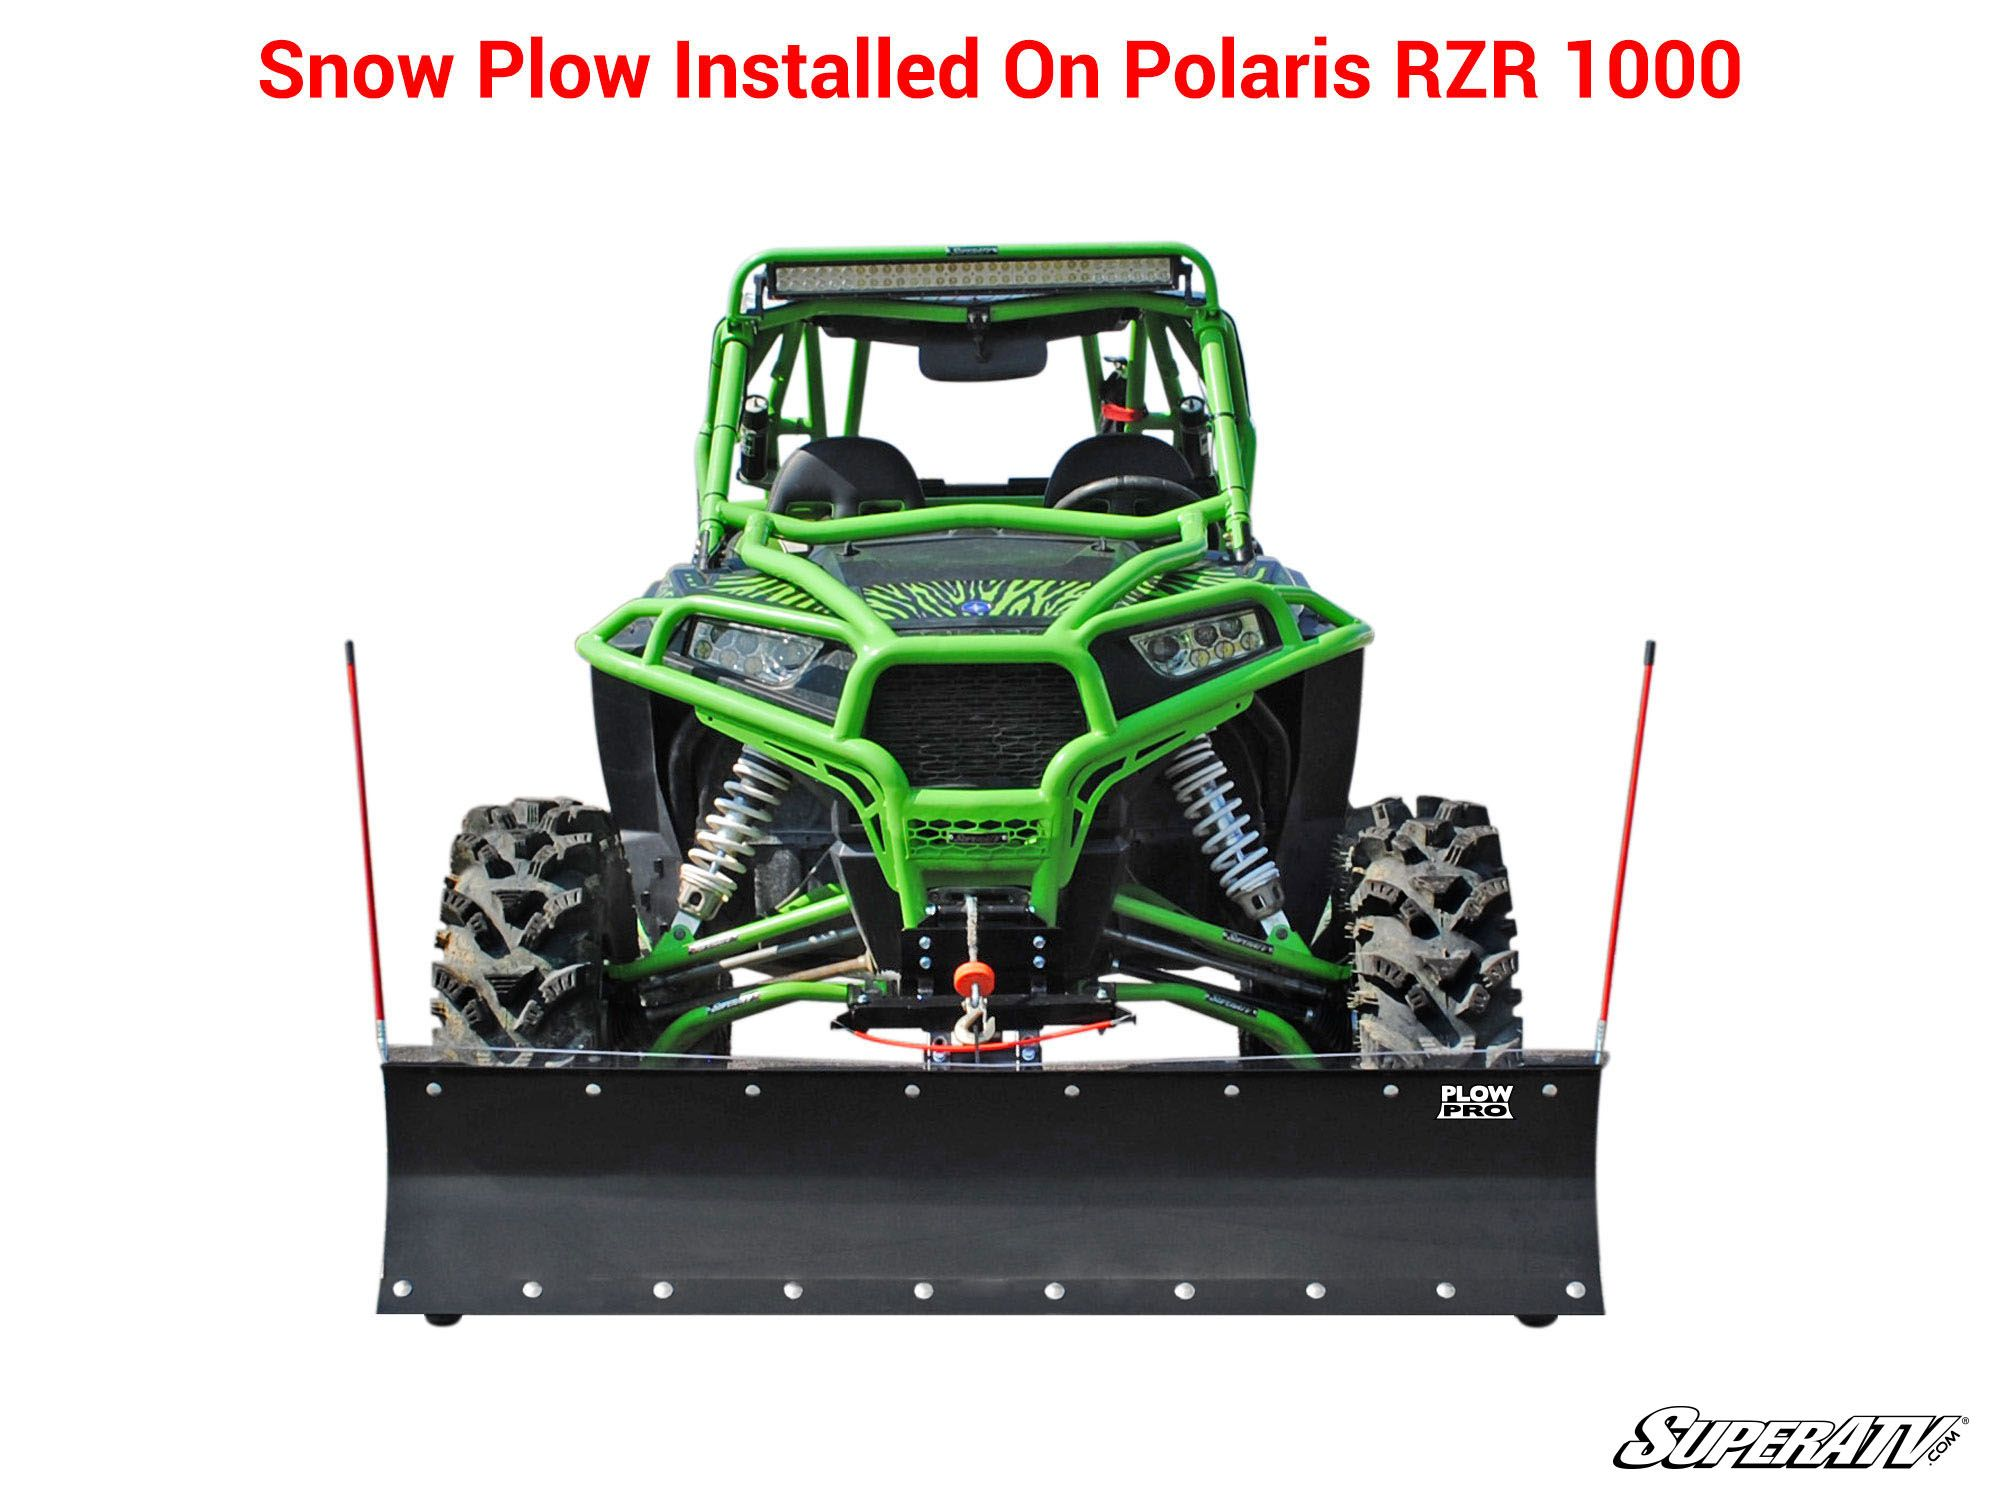 1000 SuperATV Plow Pro Heavy Duty Snow Plow Mount for Can-Am Commander 800